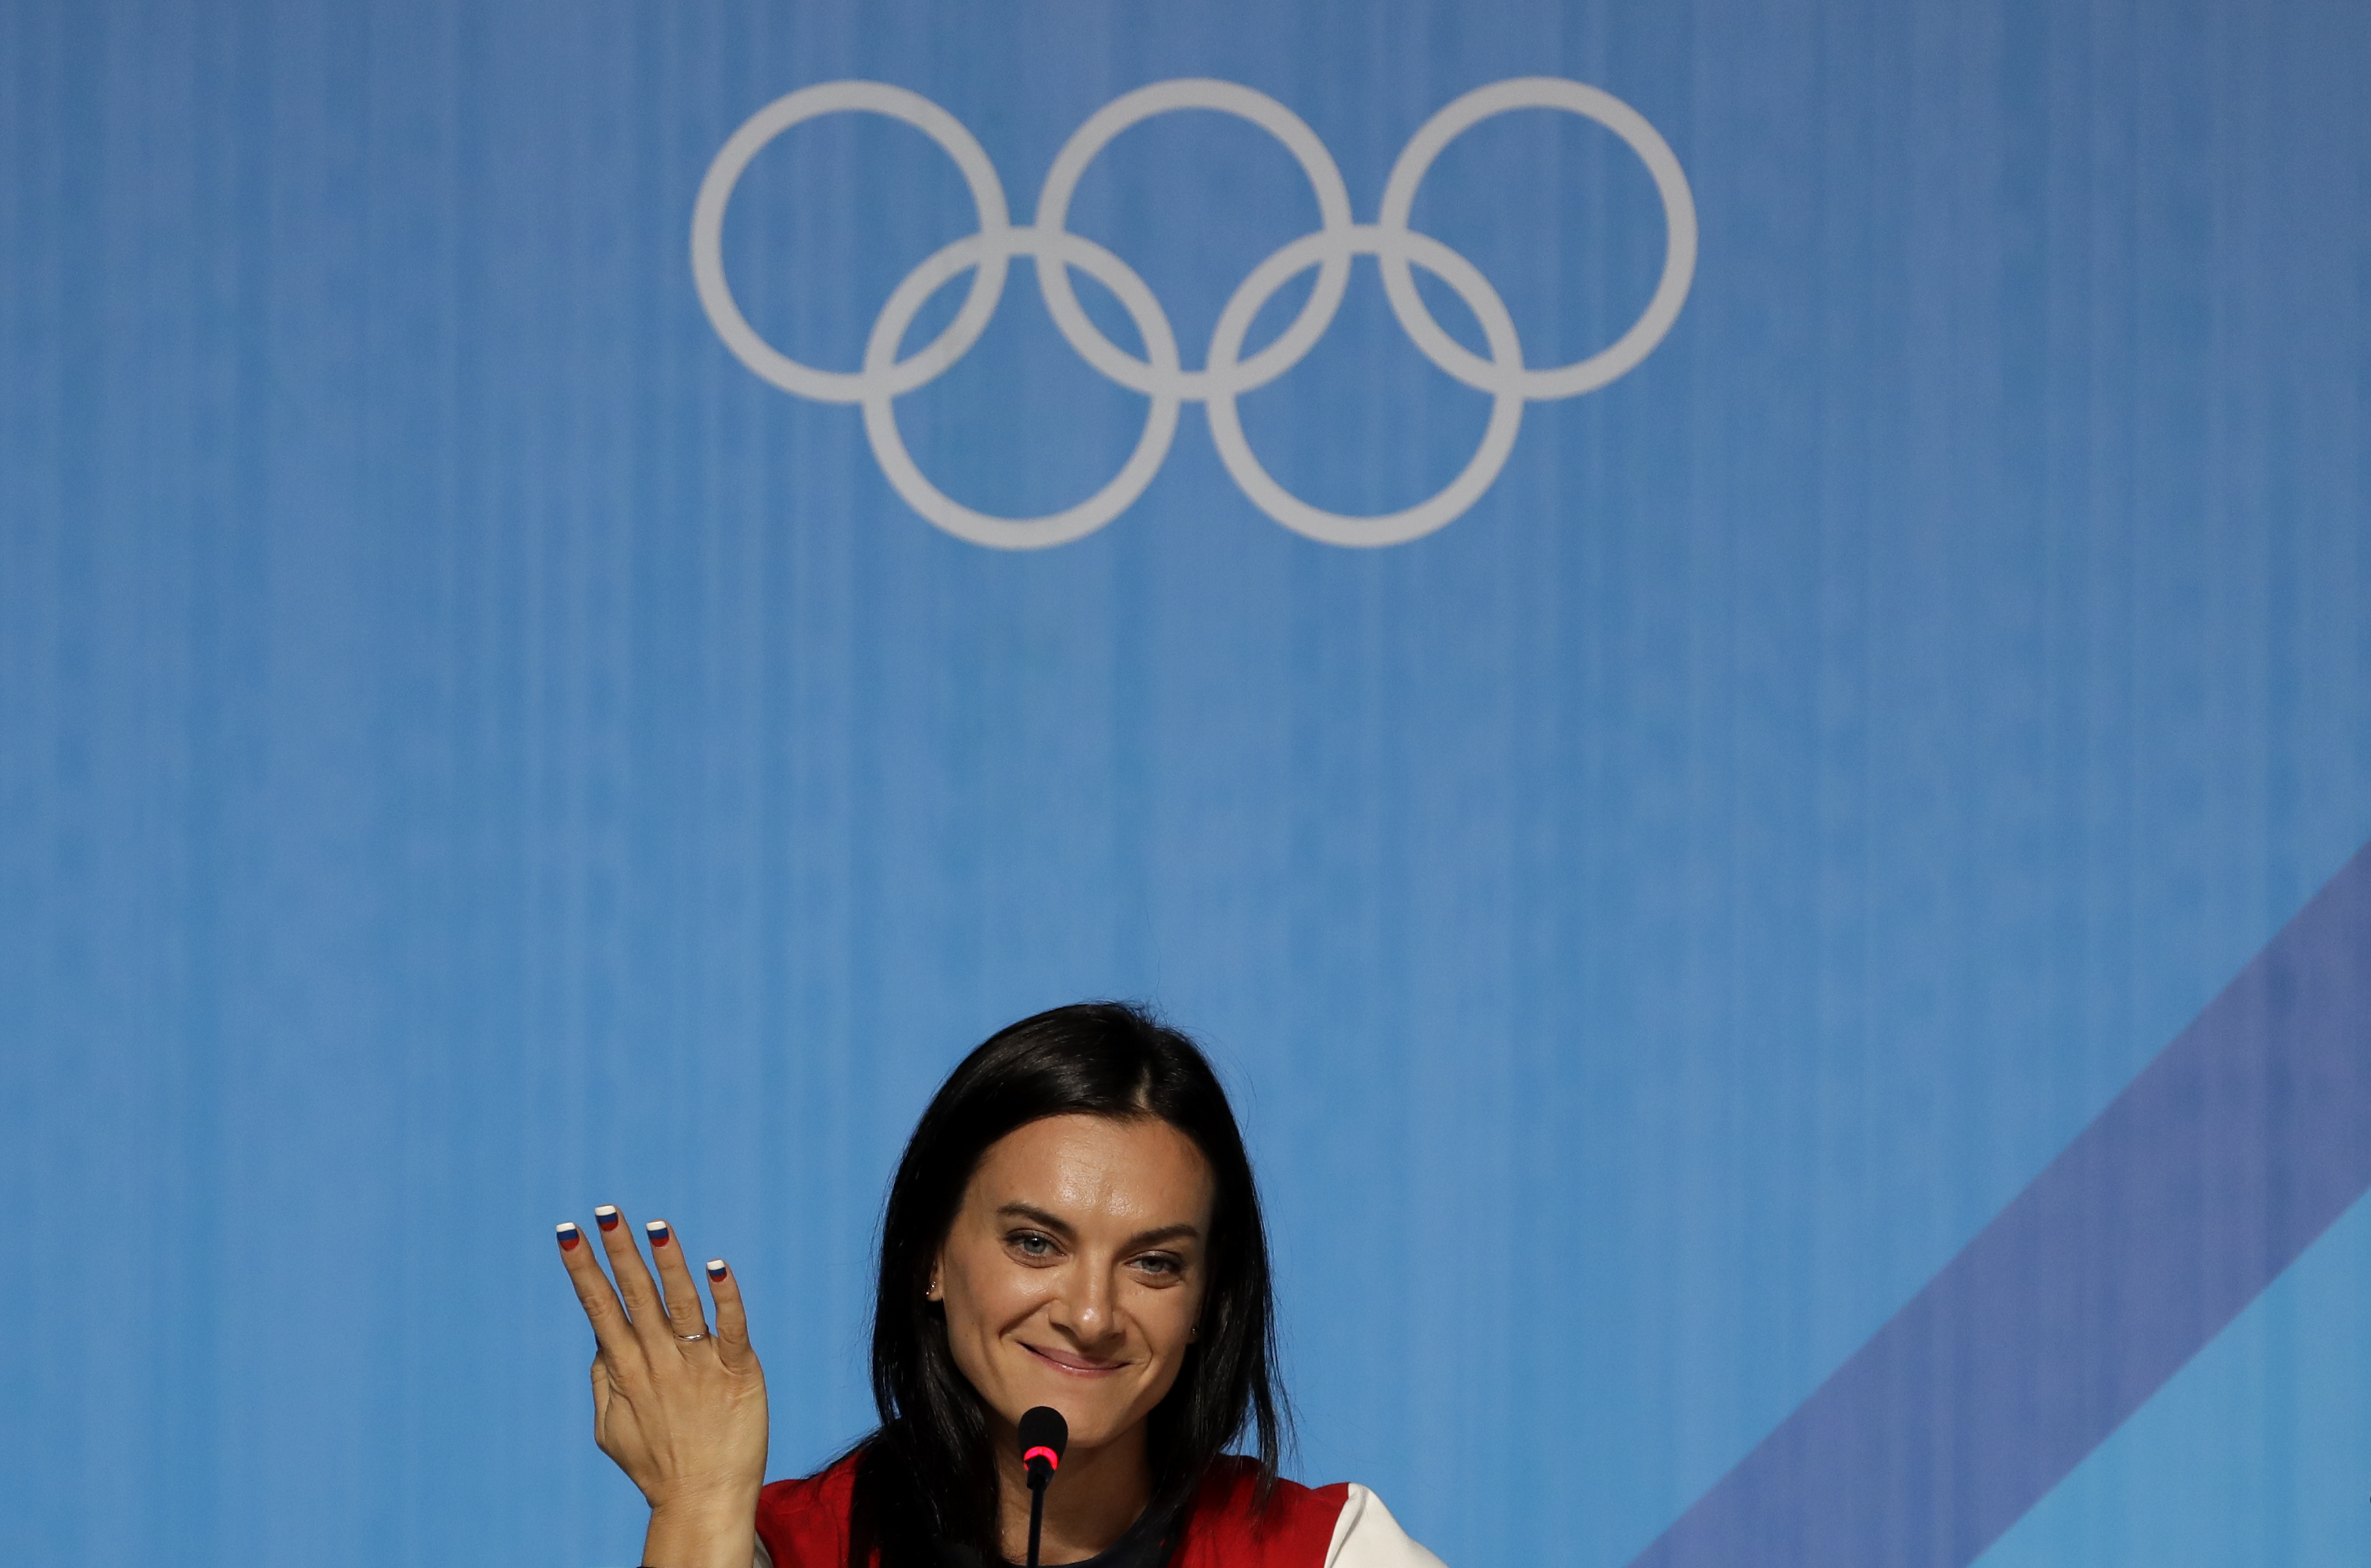 FILE_- In this Friday, Aug. 19, 2016 file photo, Yelena Isinbayeva, Russia's pole vault world record holder, speaks during a news conference at the 2016 Summer Olympics in Rio de Janeiro, Brazil.  Former Olympic pole vault champion Yelena Isinbayeva has b